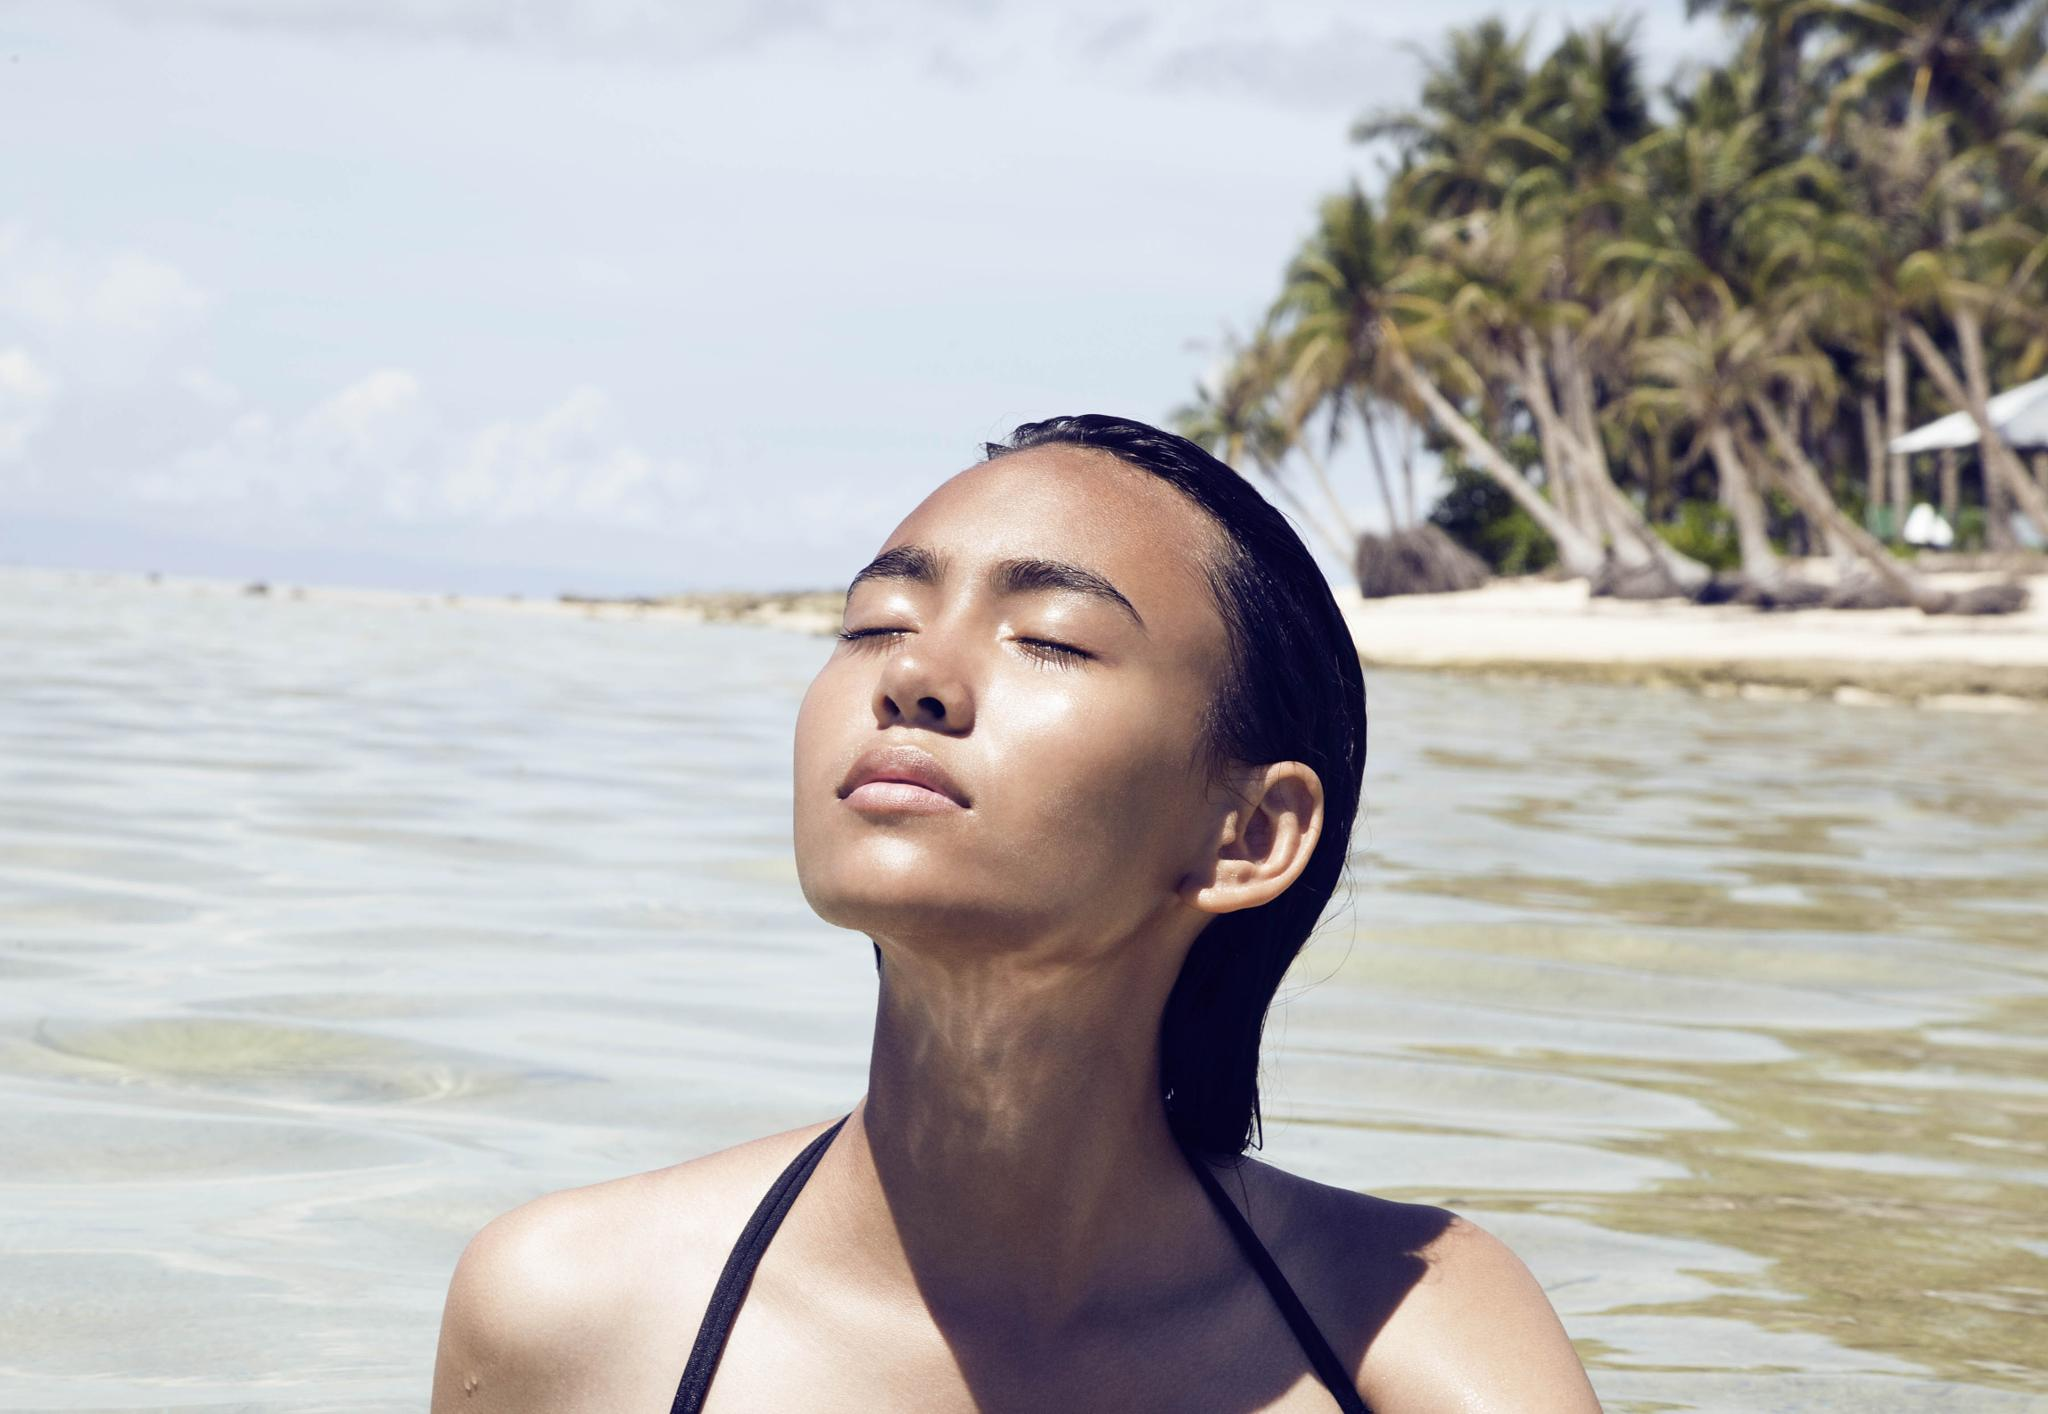 Georgina@test from Philippines by Adam Molnar